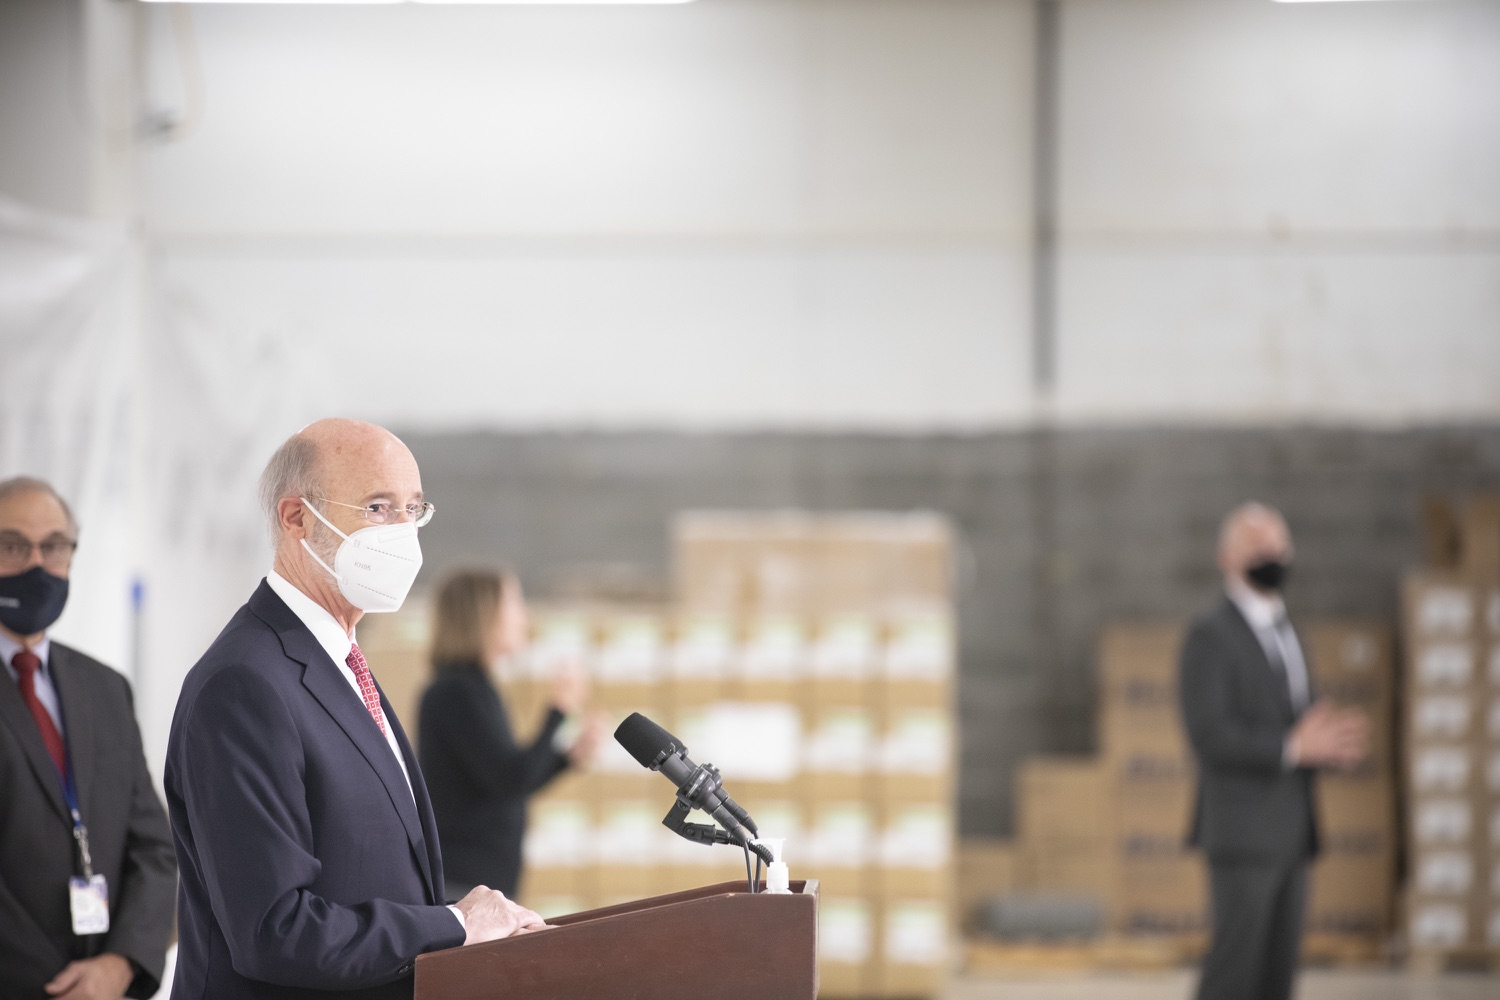 """<a href=""""https://filesource.wostreaming.net/commonwealthofpa/photo/18682_gov_vaccineClinic_dz_029.jpg"""" target=""""_blank"""">⇣Download Photo<br></a>Pennsylvania Governor Tom Wolf speaking with the press.  Governor Tom Wolf today visited the Guthrie Health vaccine clinic in Sayre, Bradford County today to tour this clinic providing vaccines to a large swath of rural residents and to talk about progress in vaccinating Pennsylvanians now that eligibility is open to all individuals age 16 and older.  Sayre, PA   April 21, 2021"""